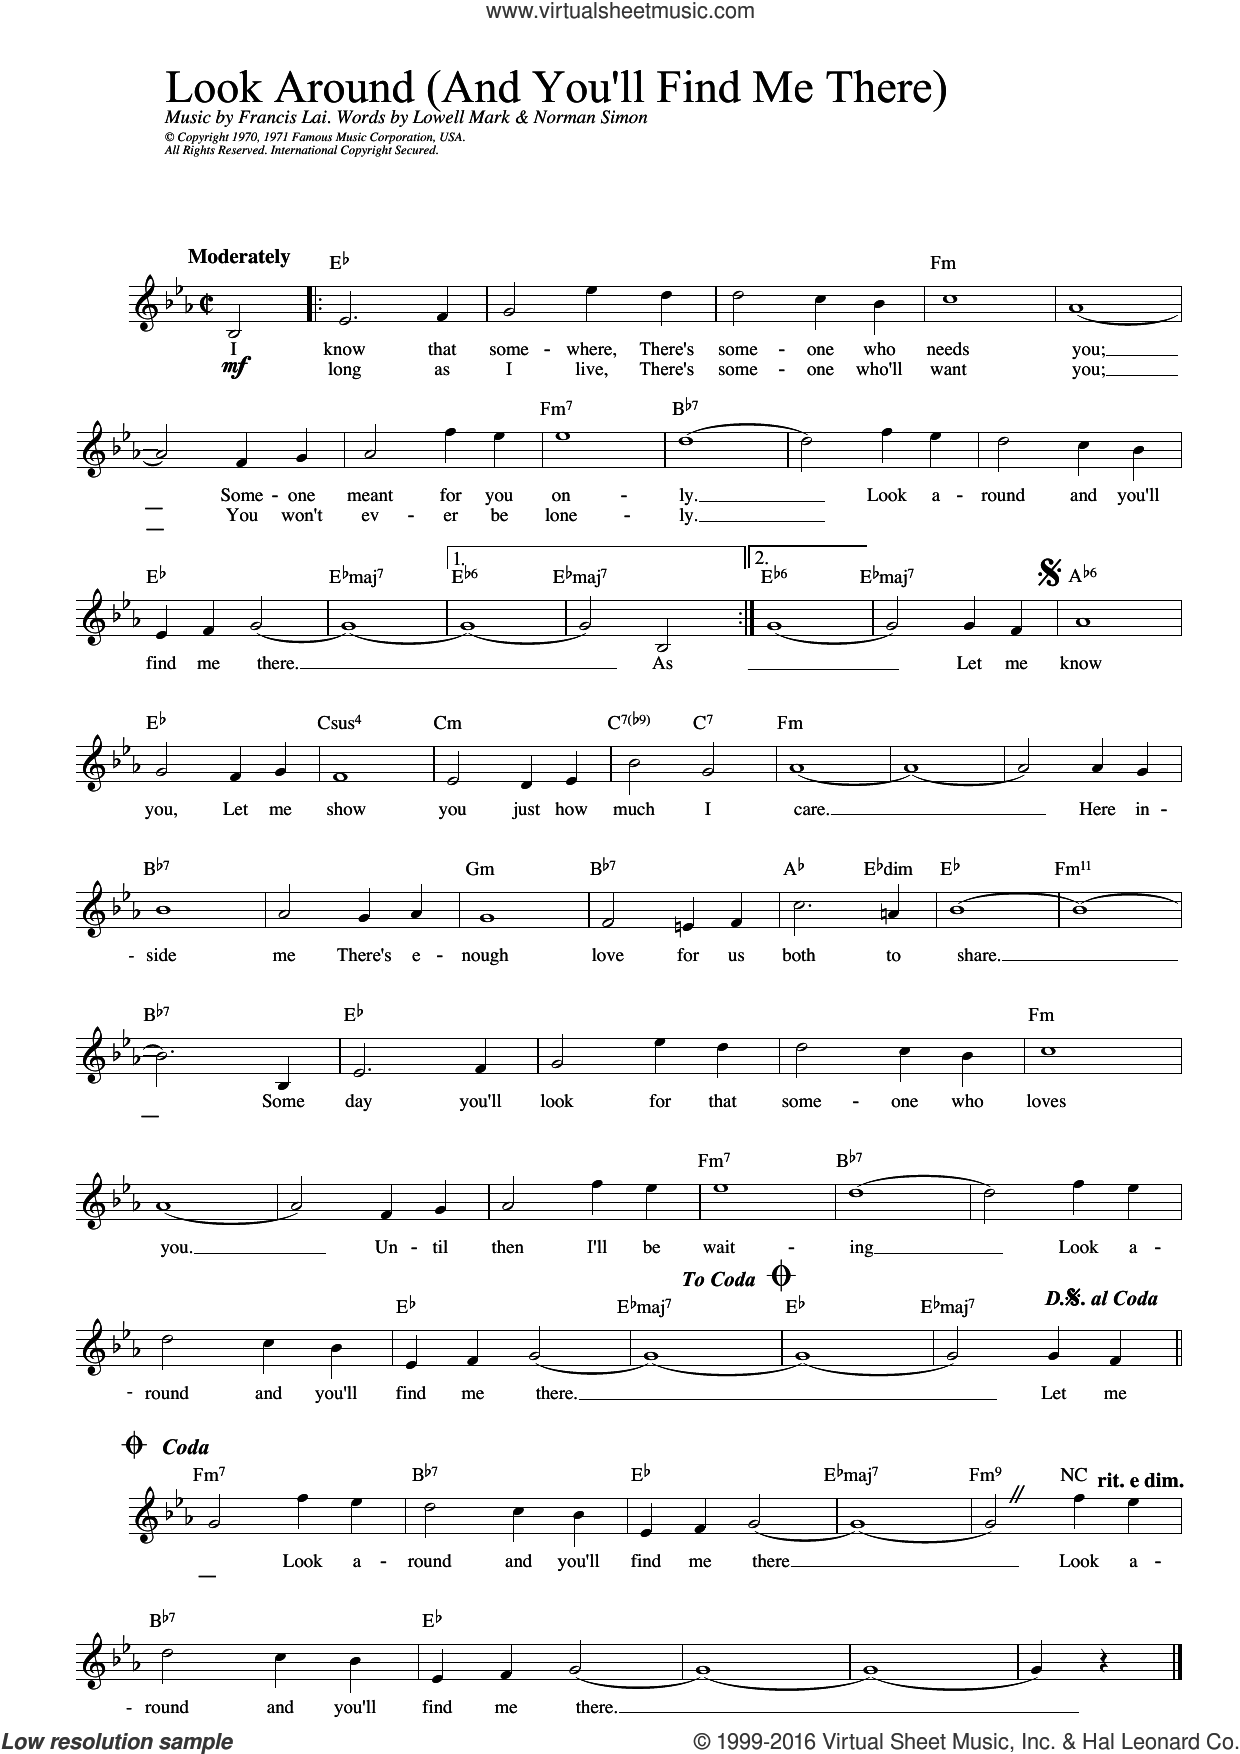 Look Around (And You'll Find Me There) (from Love Story) sheet music for voice and other instruments (fake book) by Francis Lai, Lowell Mark and Norman Simon, intermediate skill level